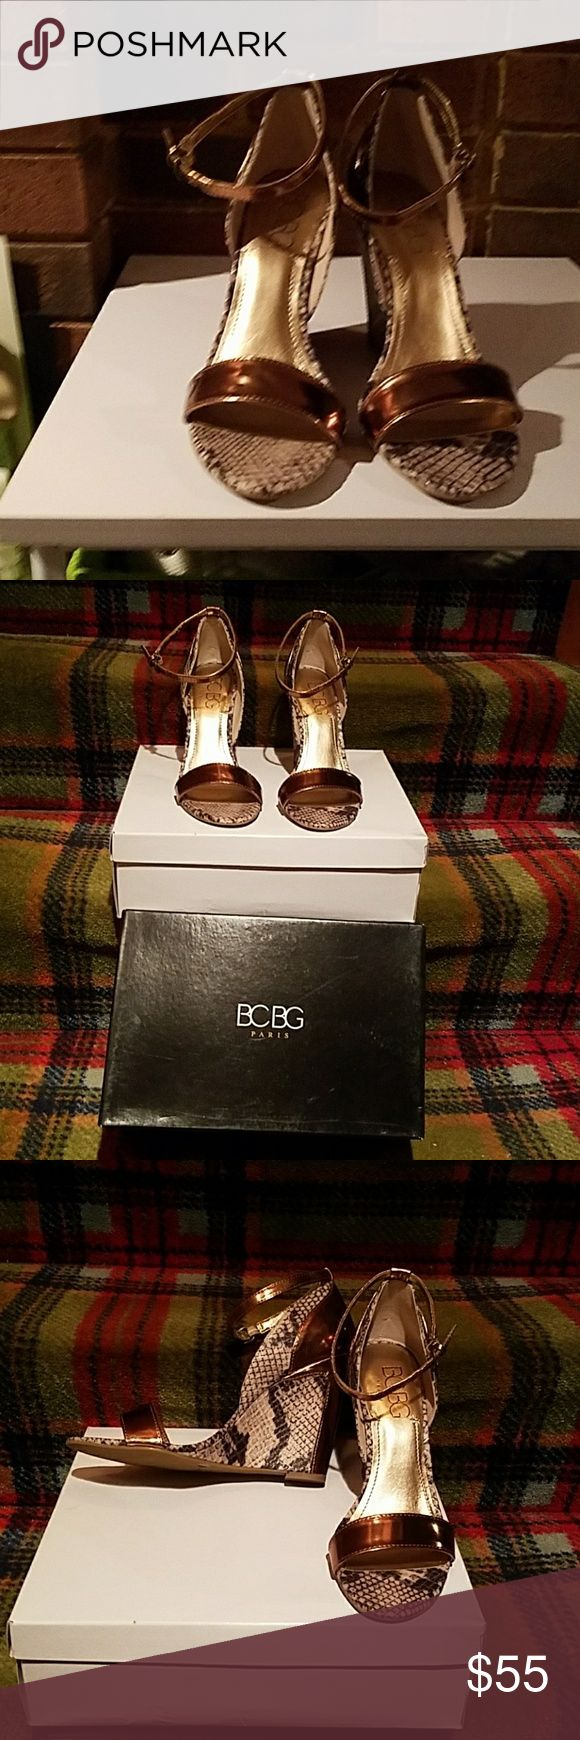 Shoes New, never worn 4 inch heel. Beautiful faux python snakeskin ankle wedge sandals with bronze patent leather strip across the toes, back of the heel and the ankle strap. BCBG Shoes Wedges